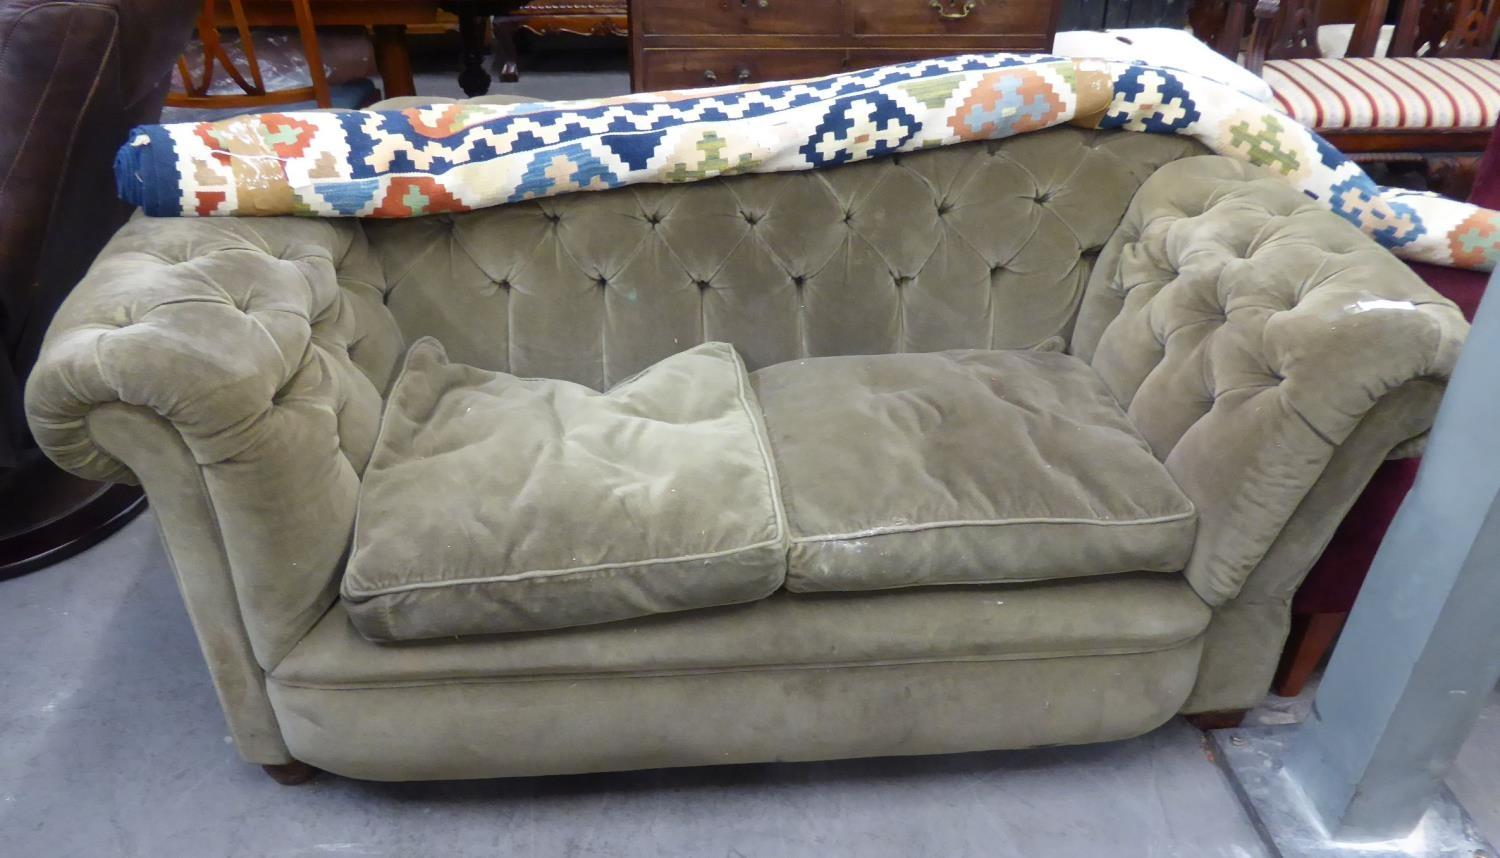 A VICTORIAN CHESTERFIELD SOFA HAVING BUTTON BACK AND ARMS, HAVING DROP ARM TO ONE END, IN GREEN